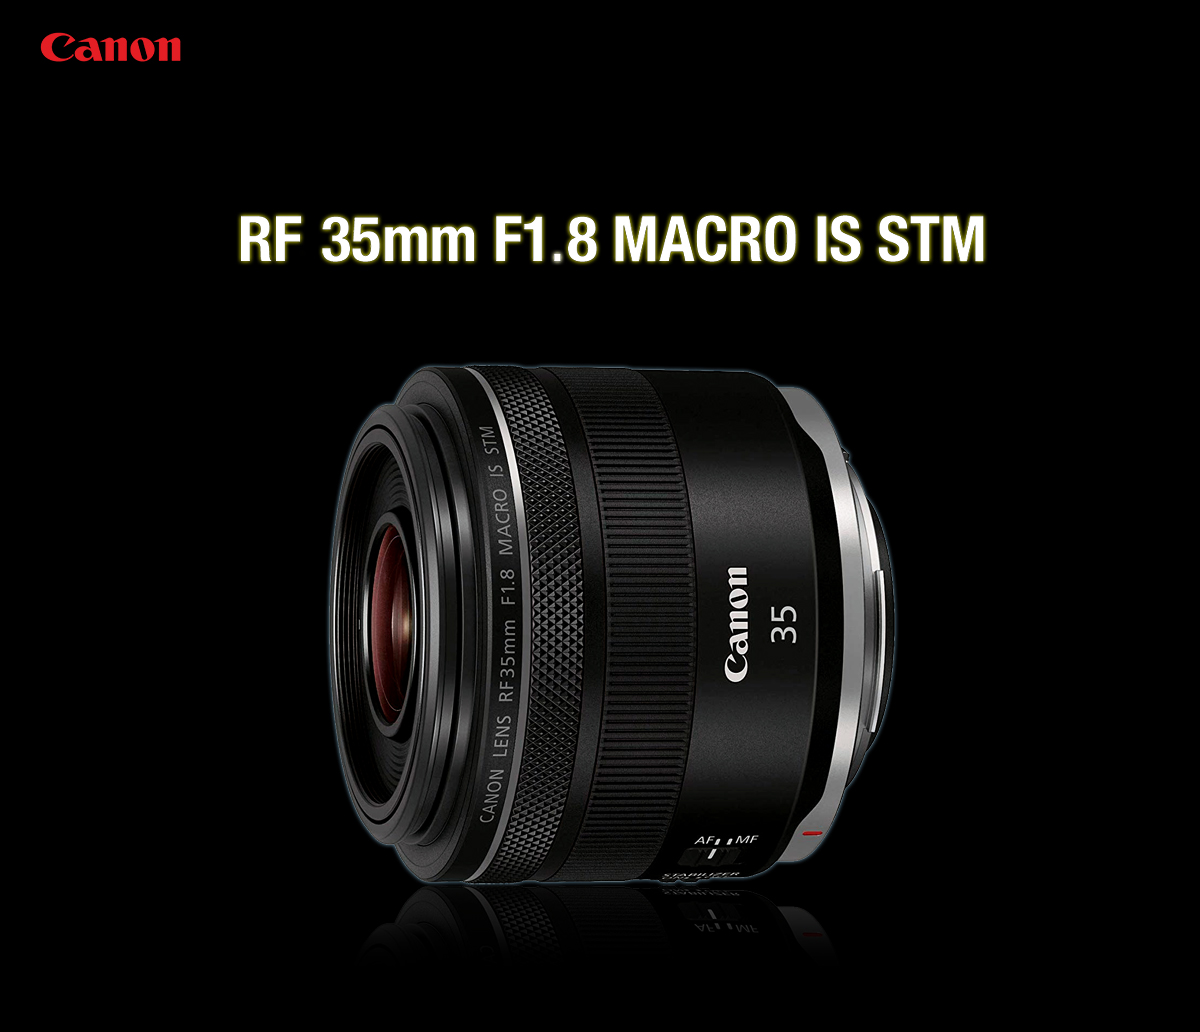 Canon RF35mm F1.8 Macro IS STM